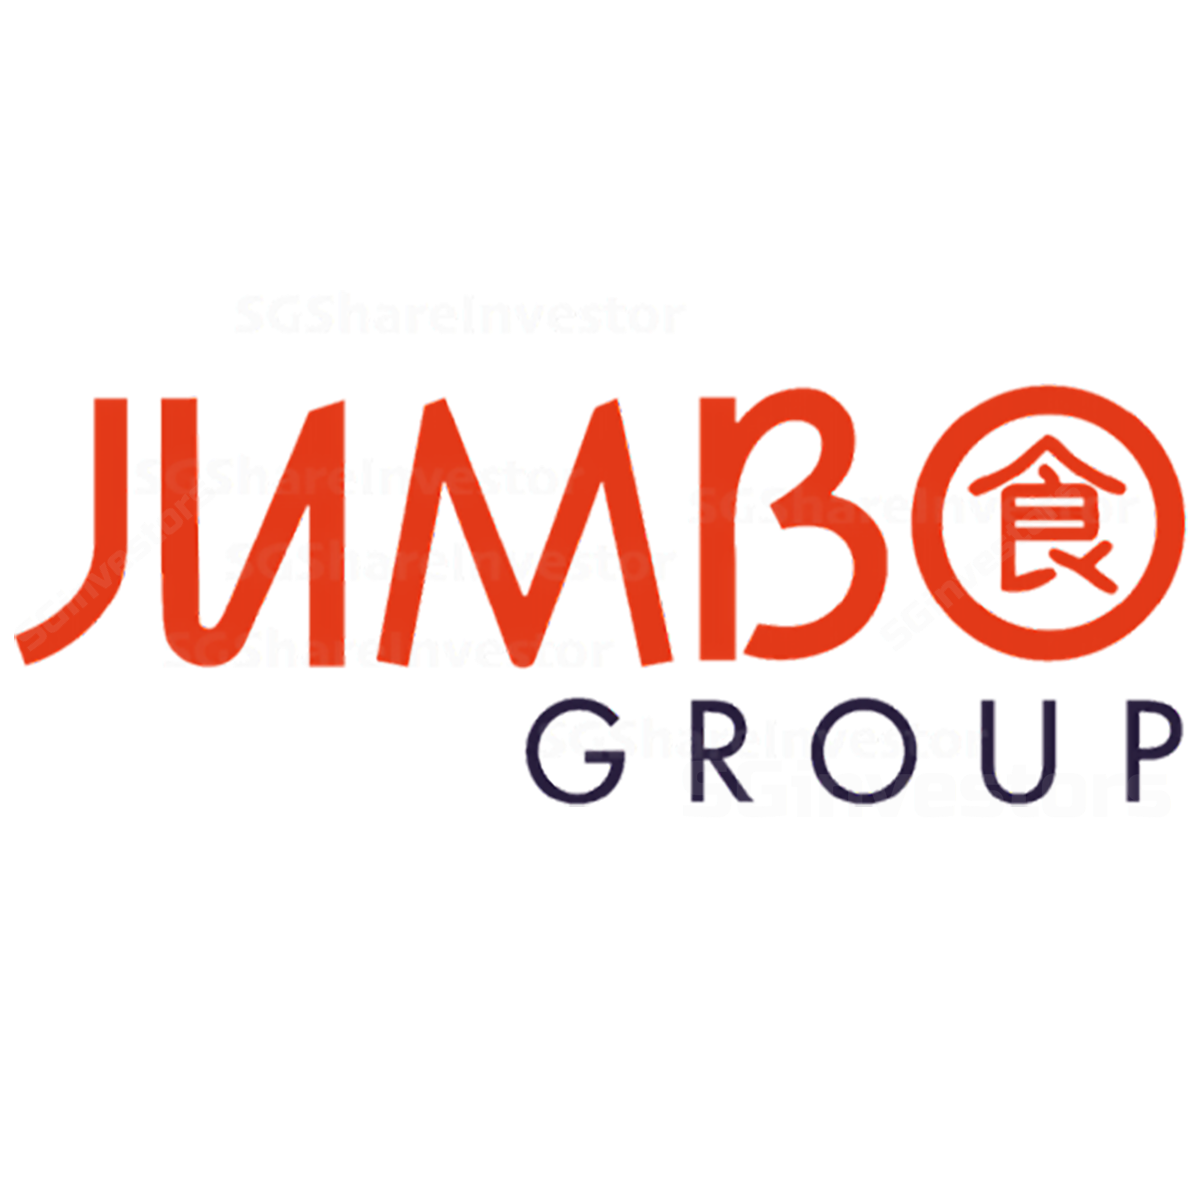 Jumbo Group - DBS Vickers 2017-02-14: Growth prospects priced in for now